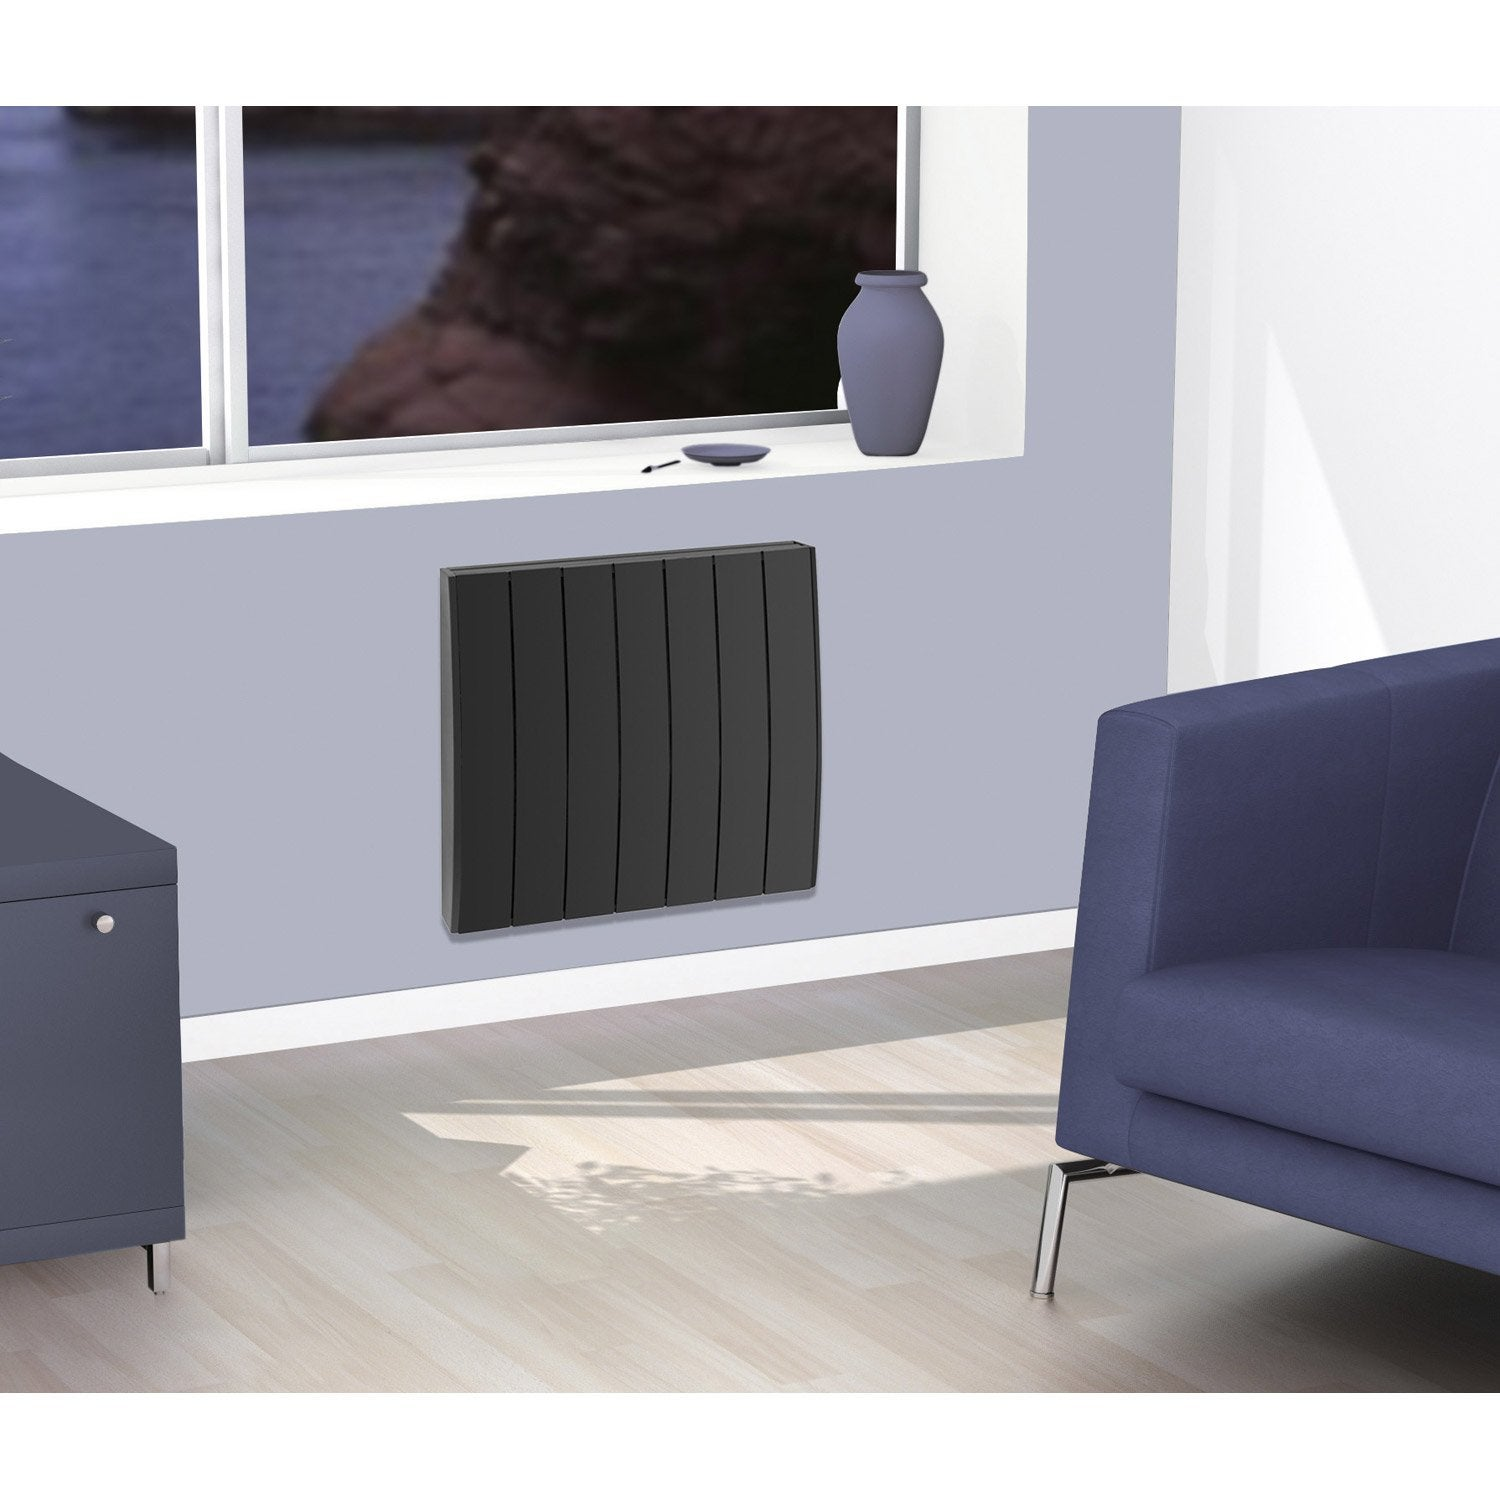 radiateur lectrique inertie pierre concorde pyrite 2 1000 w leroy merlin. Black Bedroom Furniture Sets. Home Design Ideas